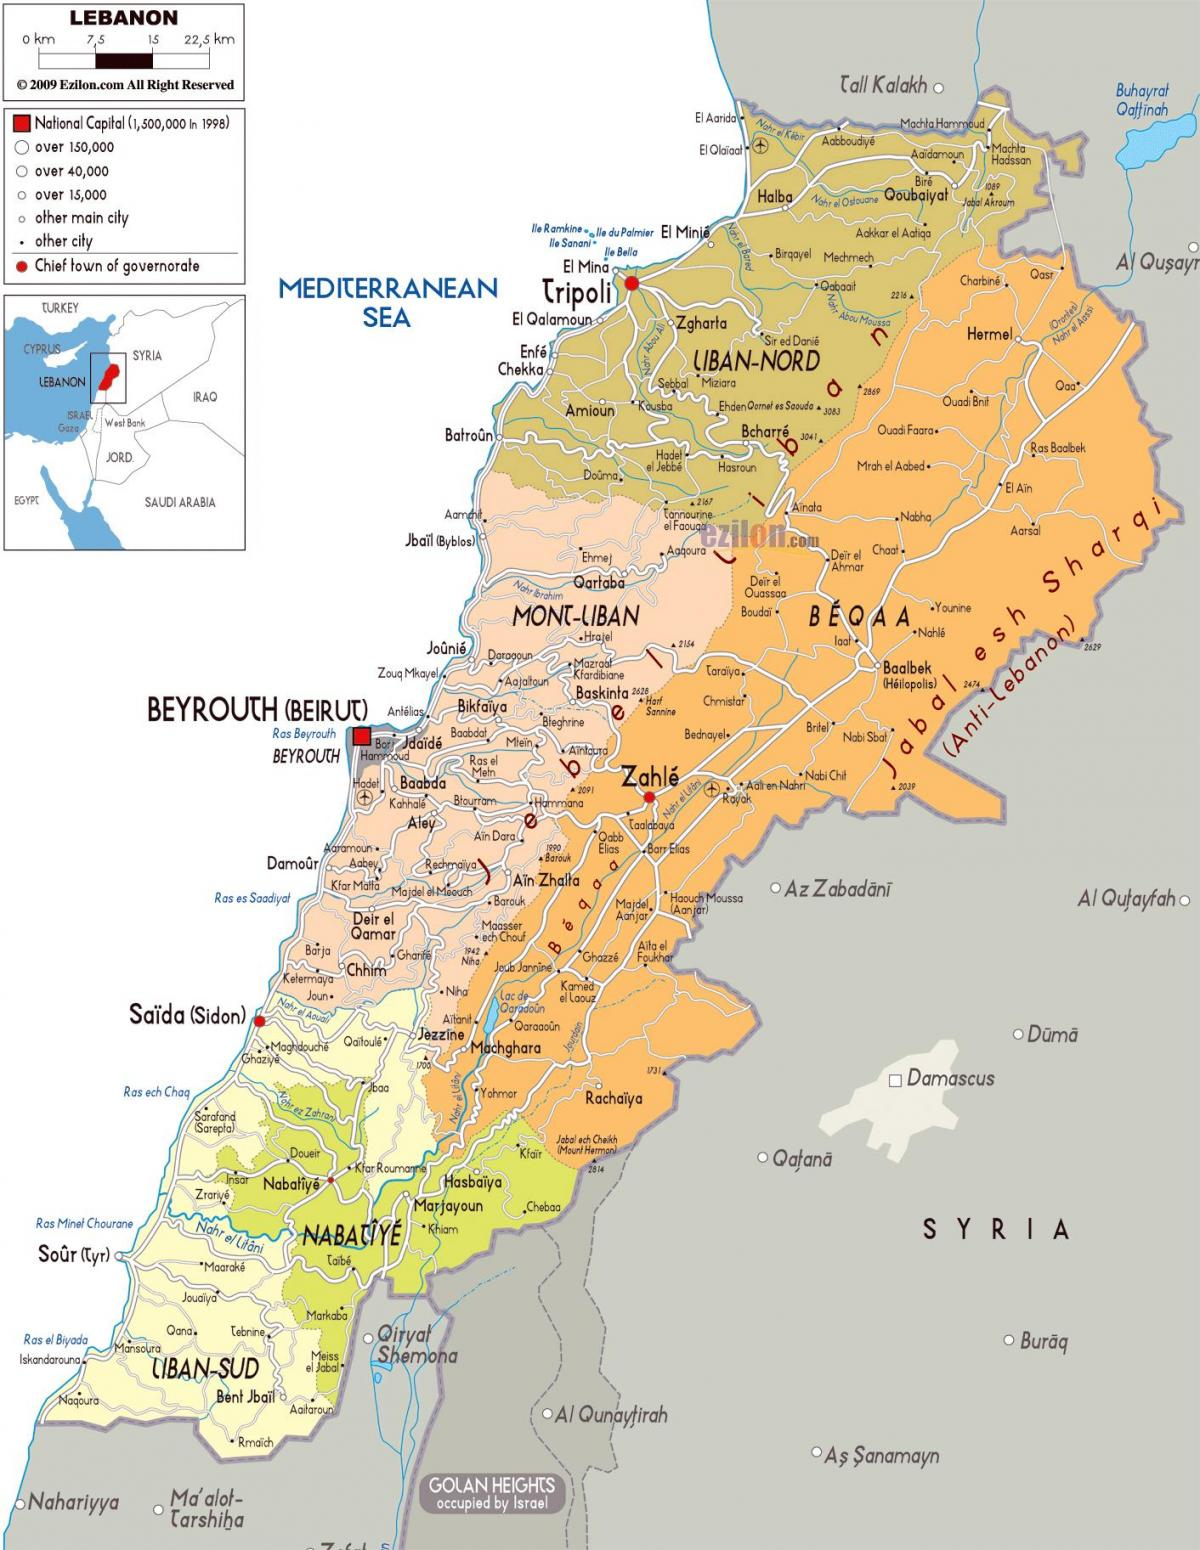 Lebanon map detailed